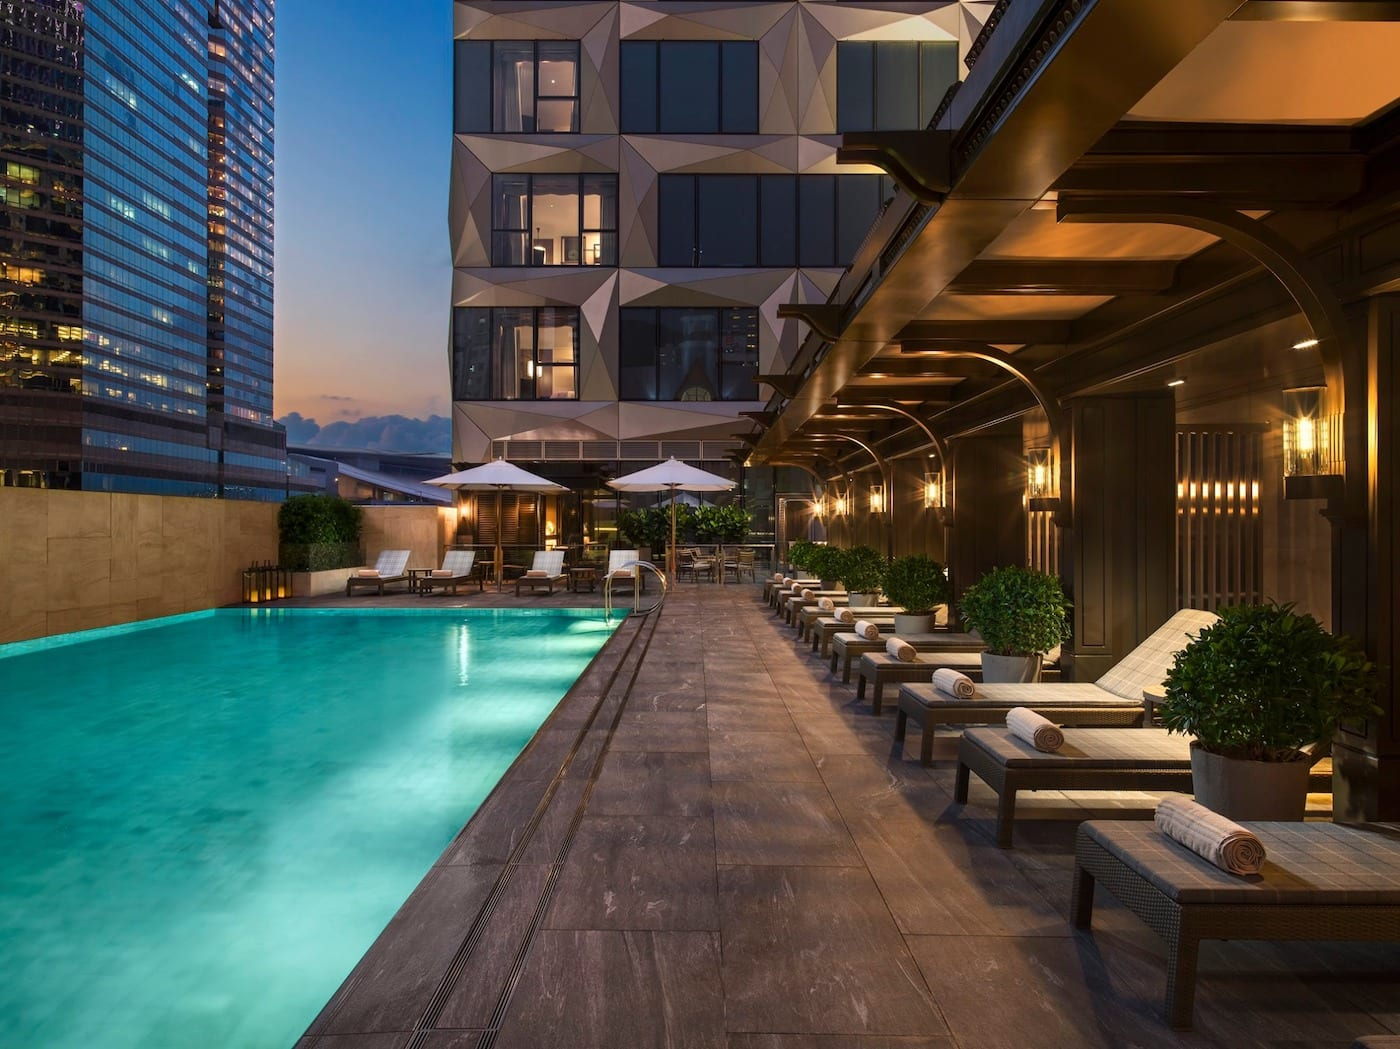 Top Wan Chai hotels that guarantee great fine dining restaurants, swimming pools, and spa time